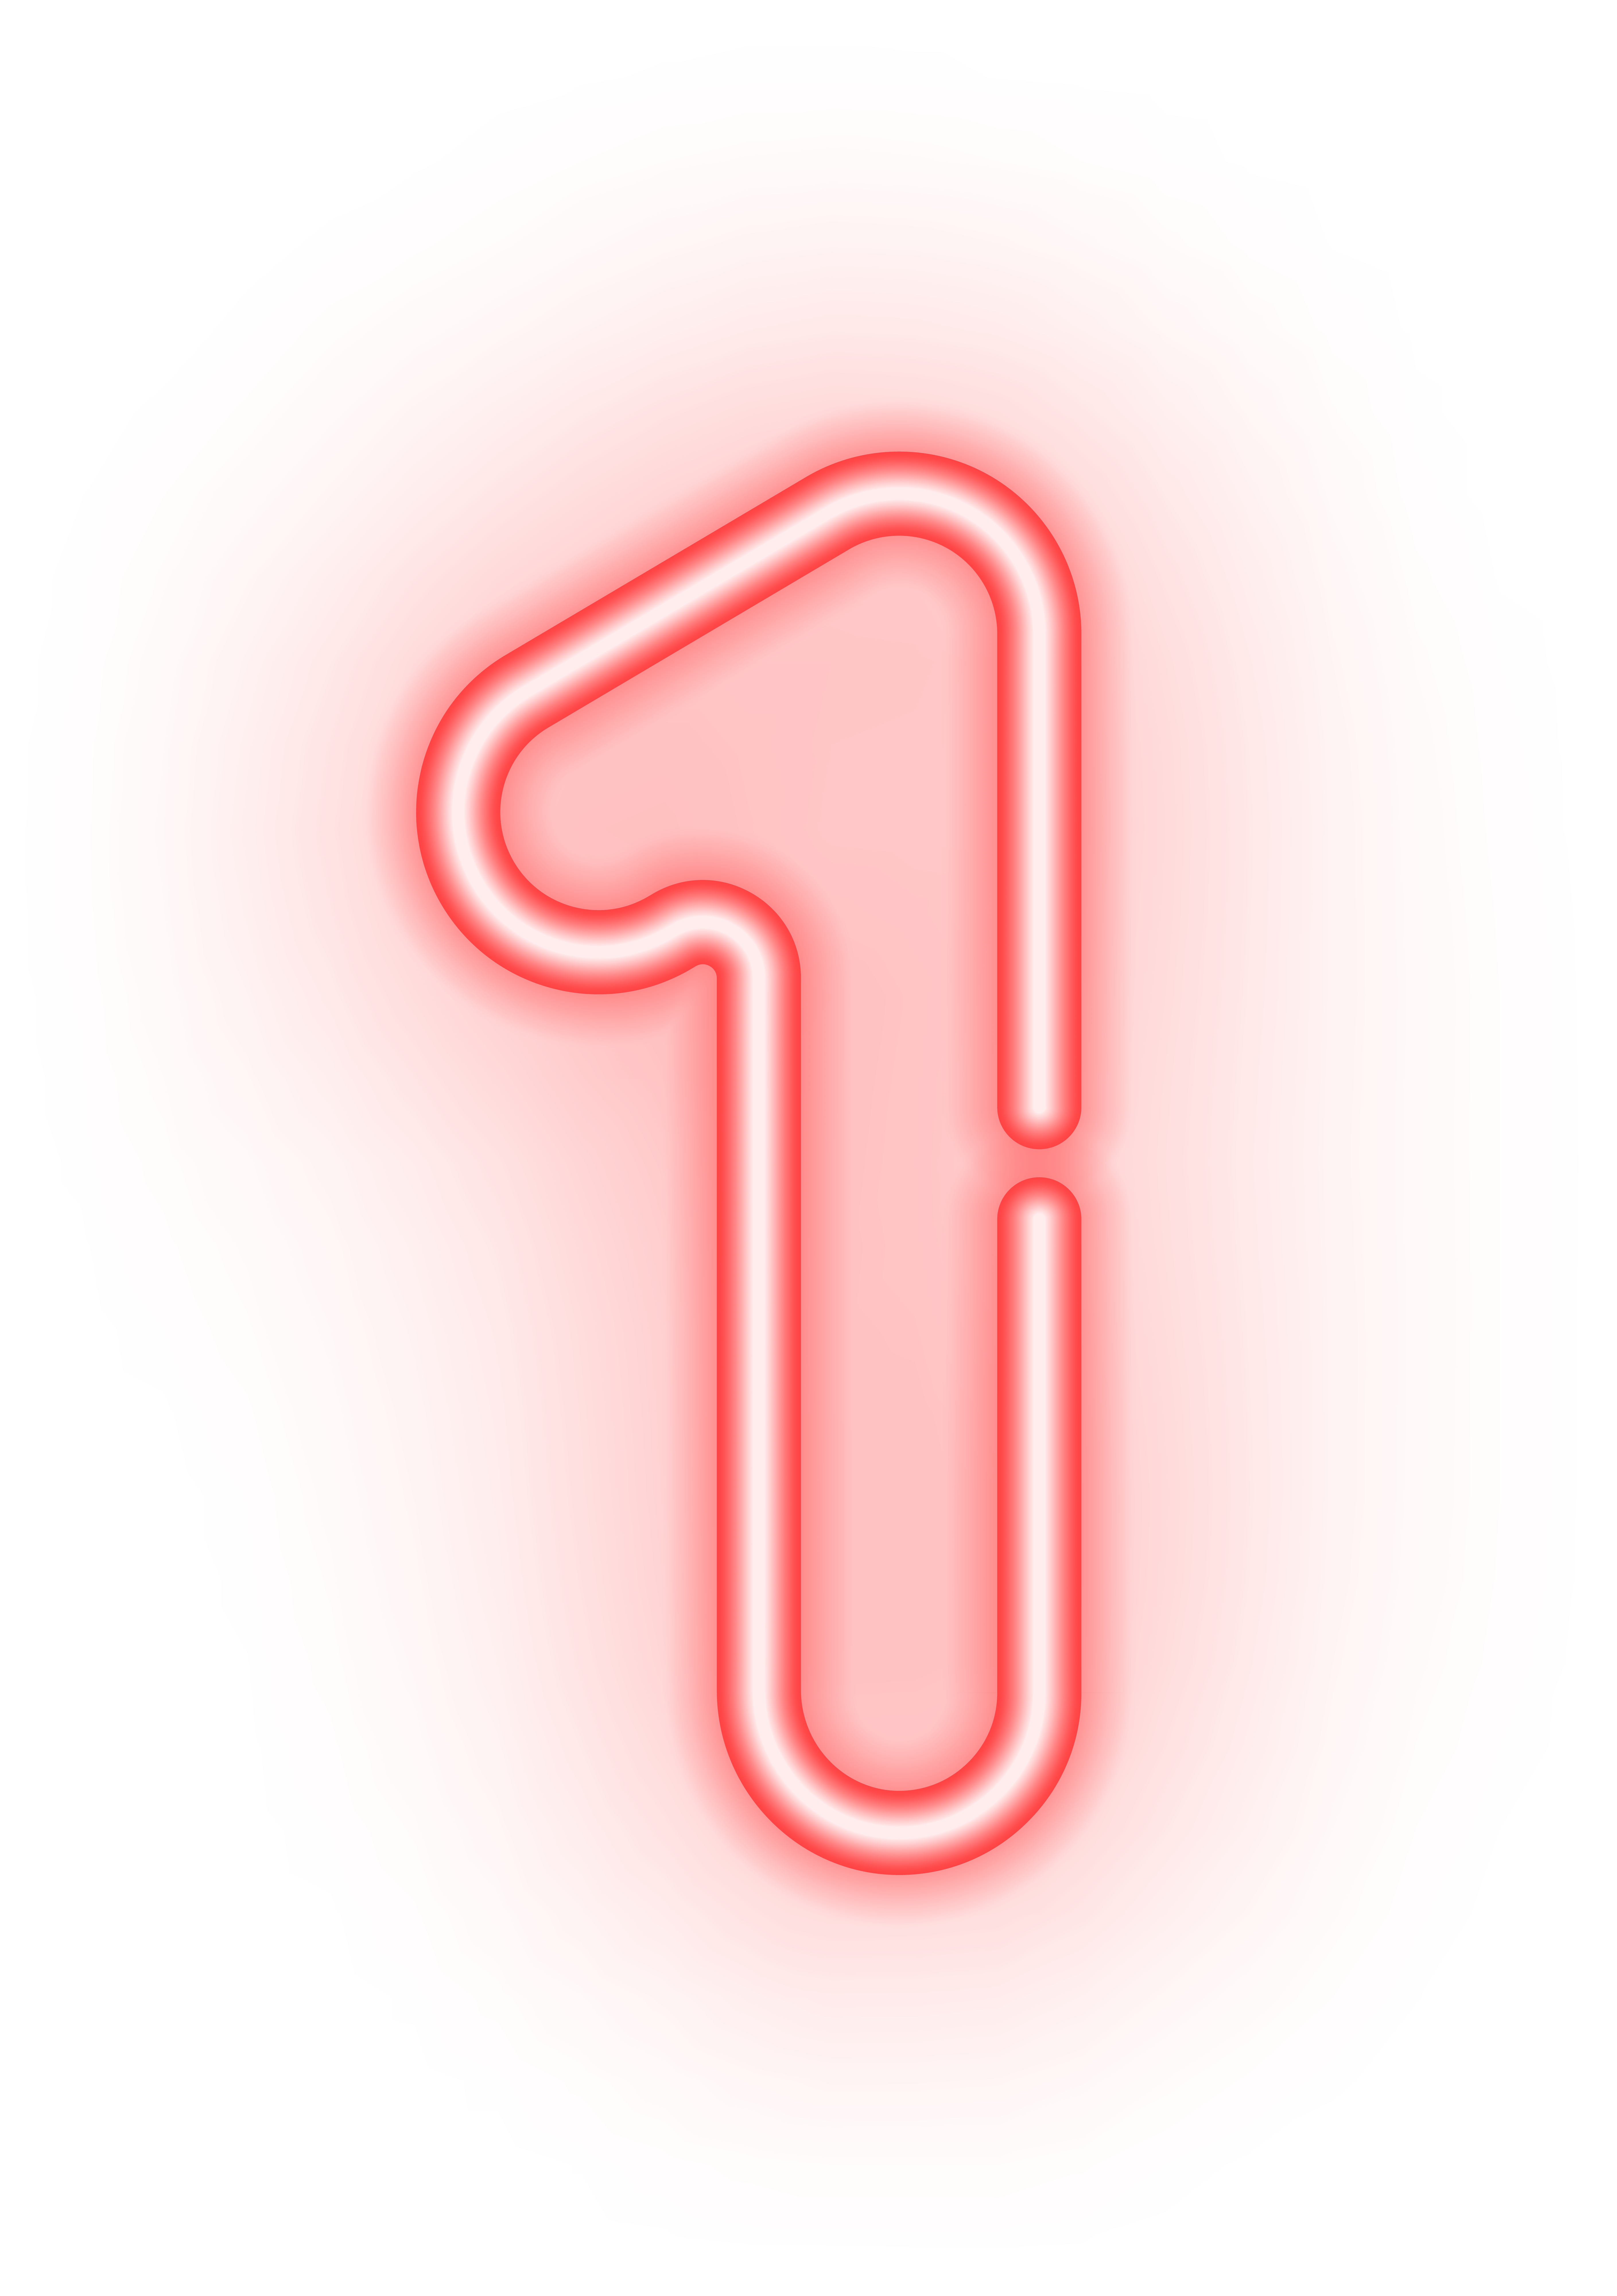 Neon numbers png. Number one transparent image